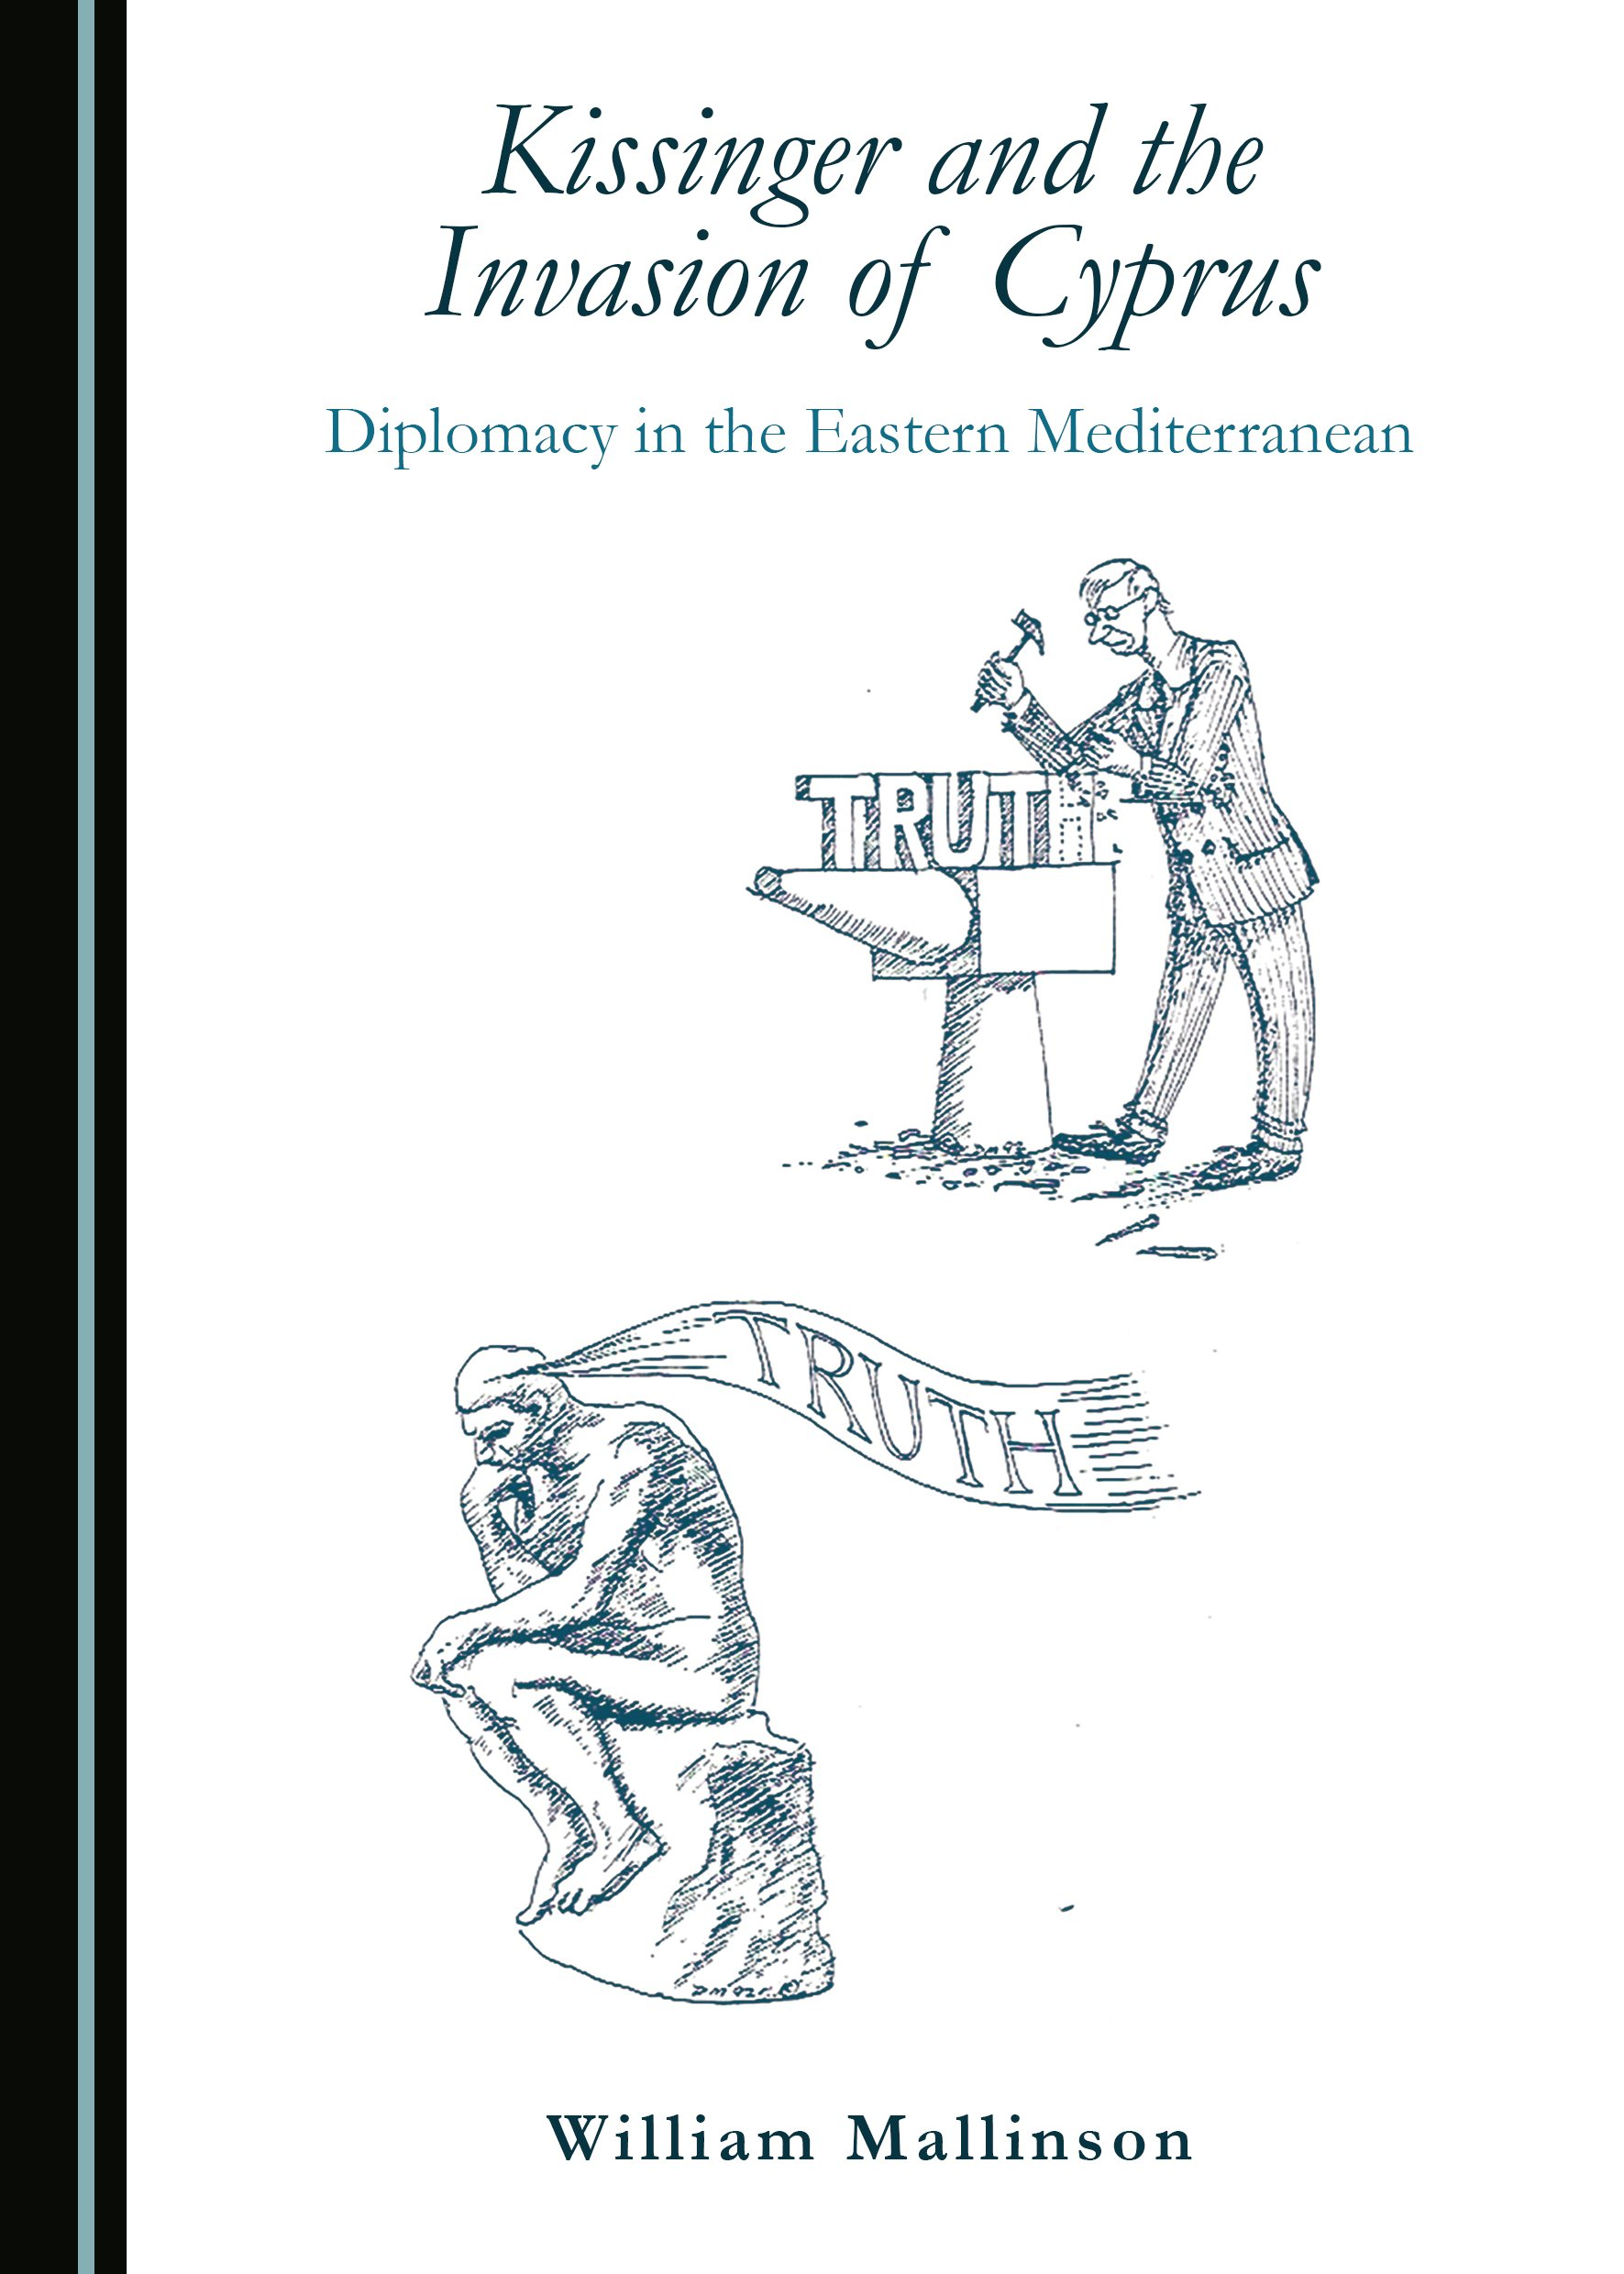 Kissinger and the Invasion of Cyprus: Diplomacy in the Eastern Mediterranean